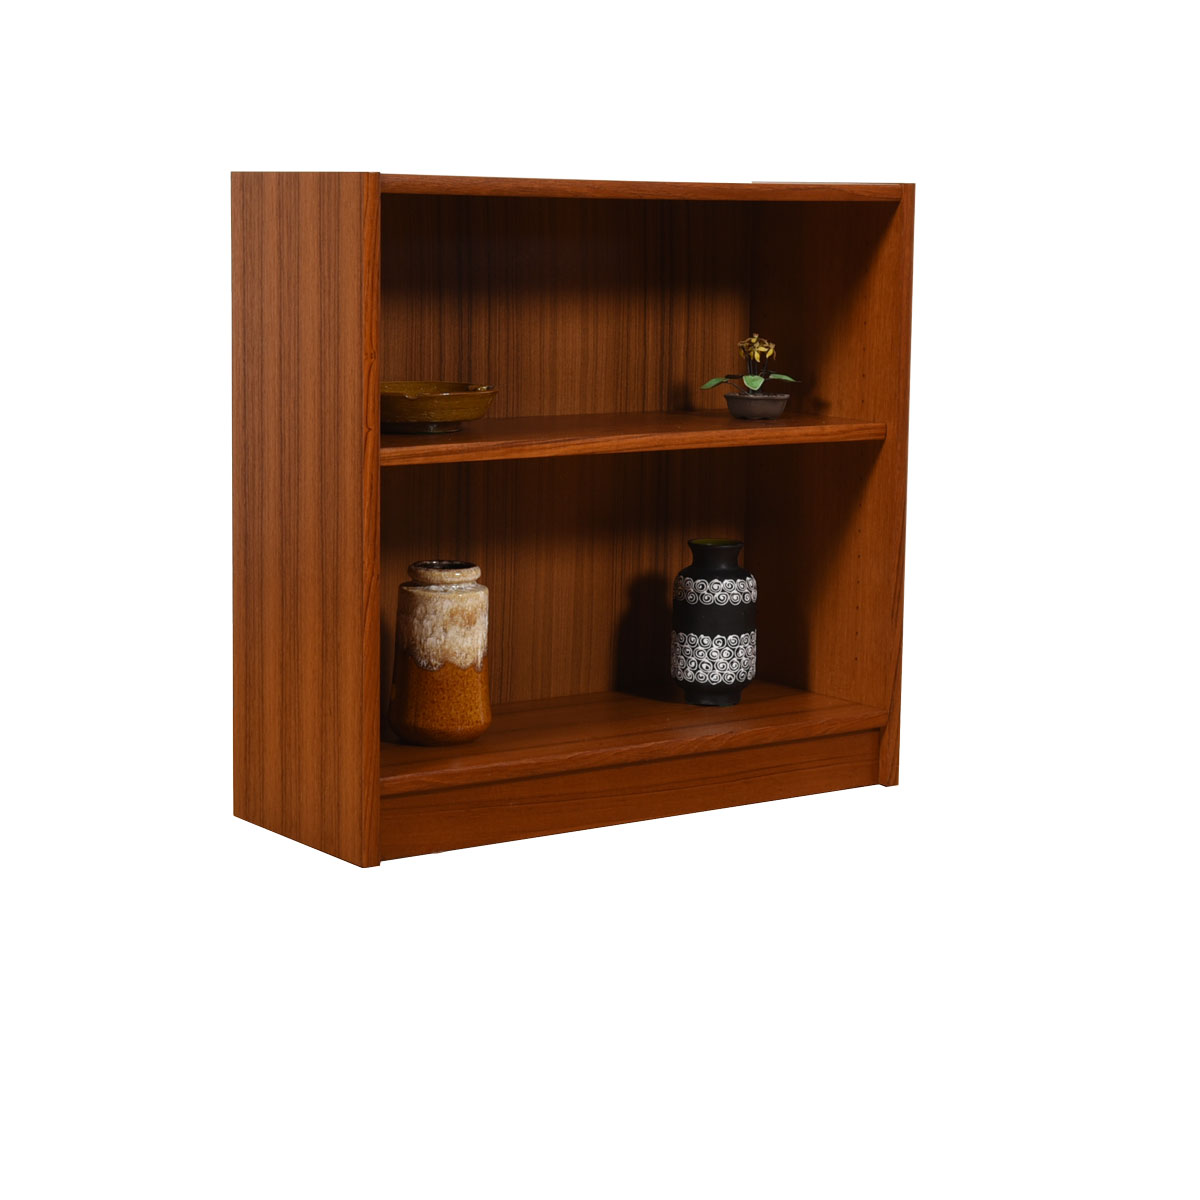 Petite Danish Modern Bookcase in Teak